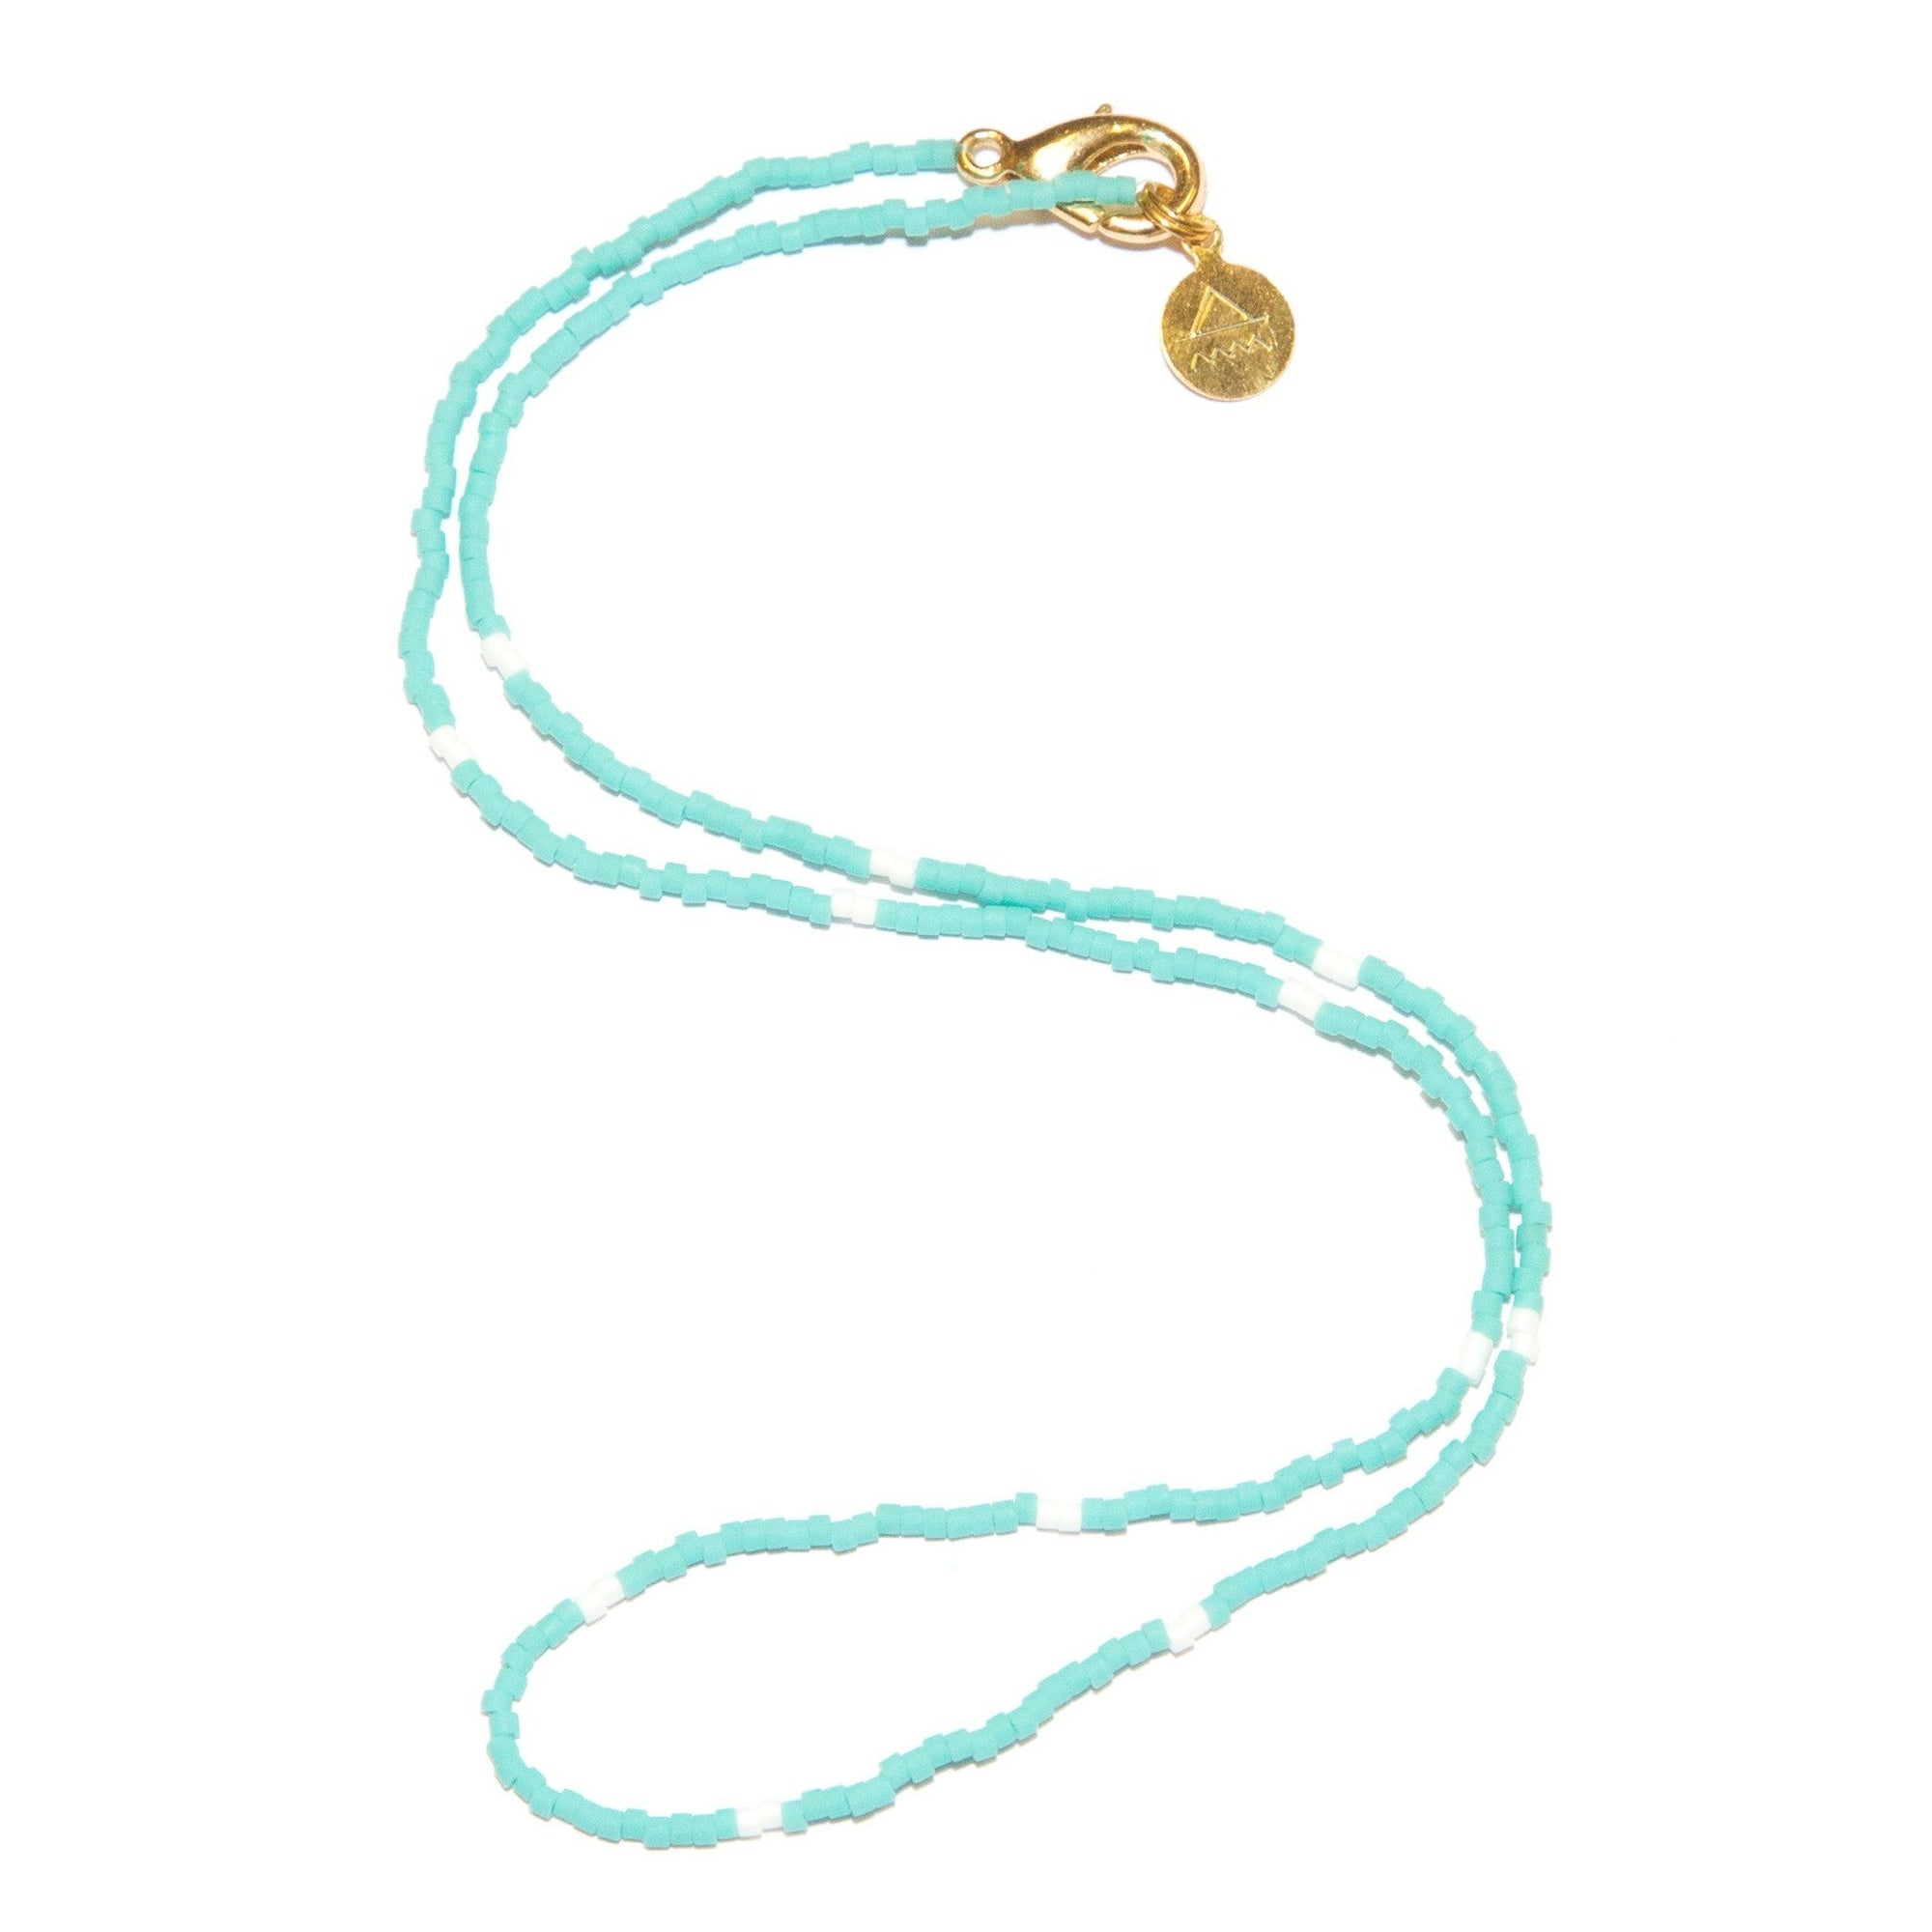 Teal w/ White Dot Necklace